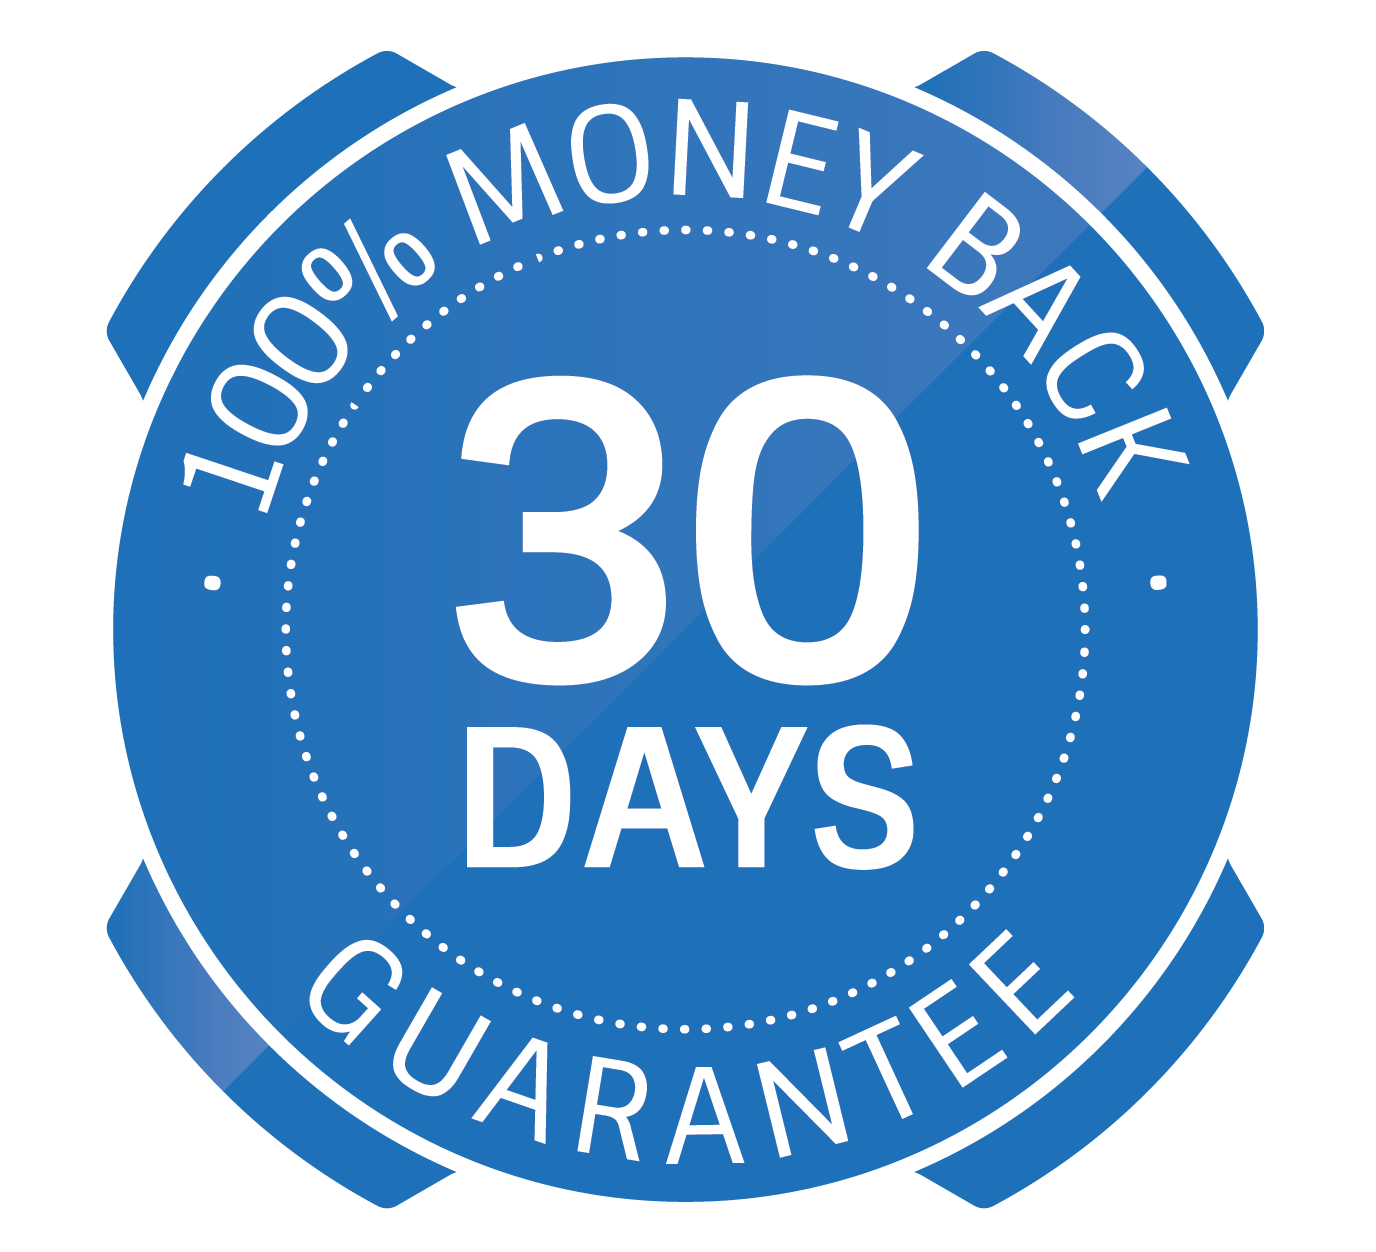 30 Day Guarantee Png File PNG Image